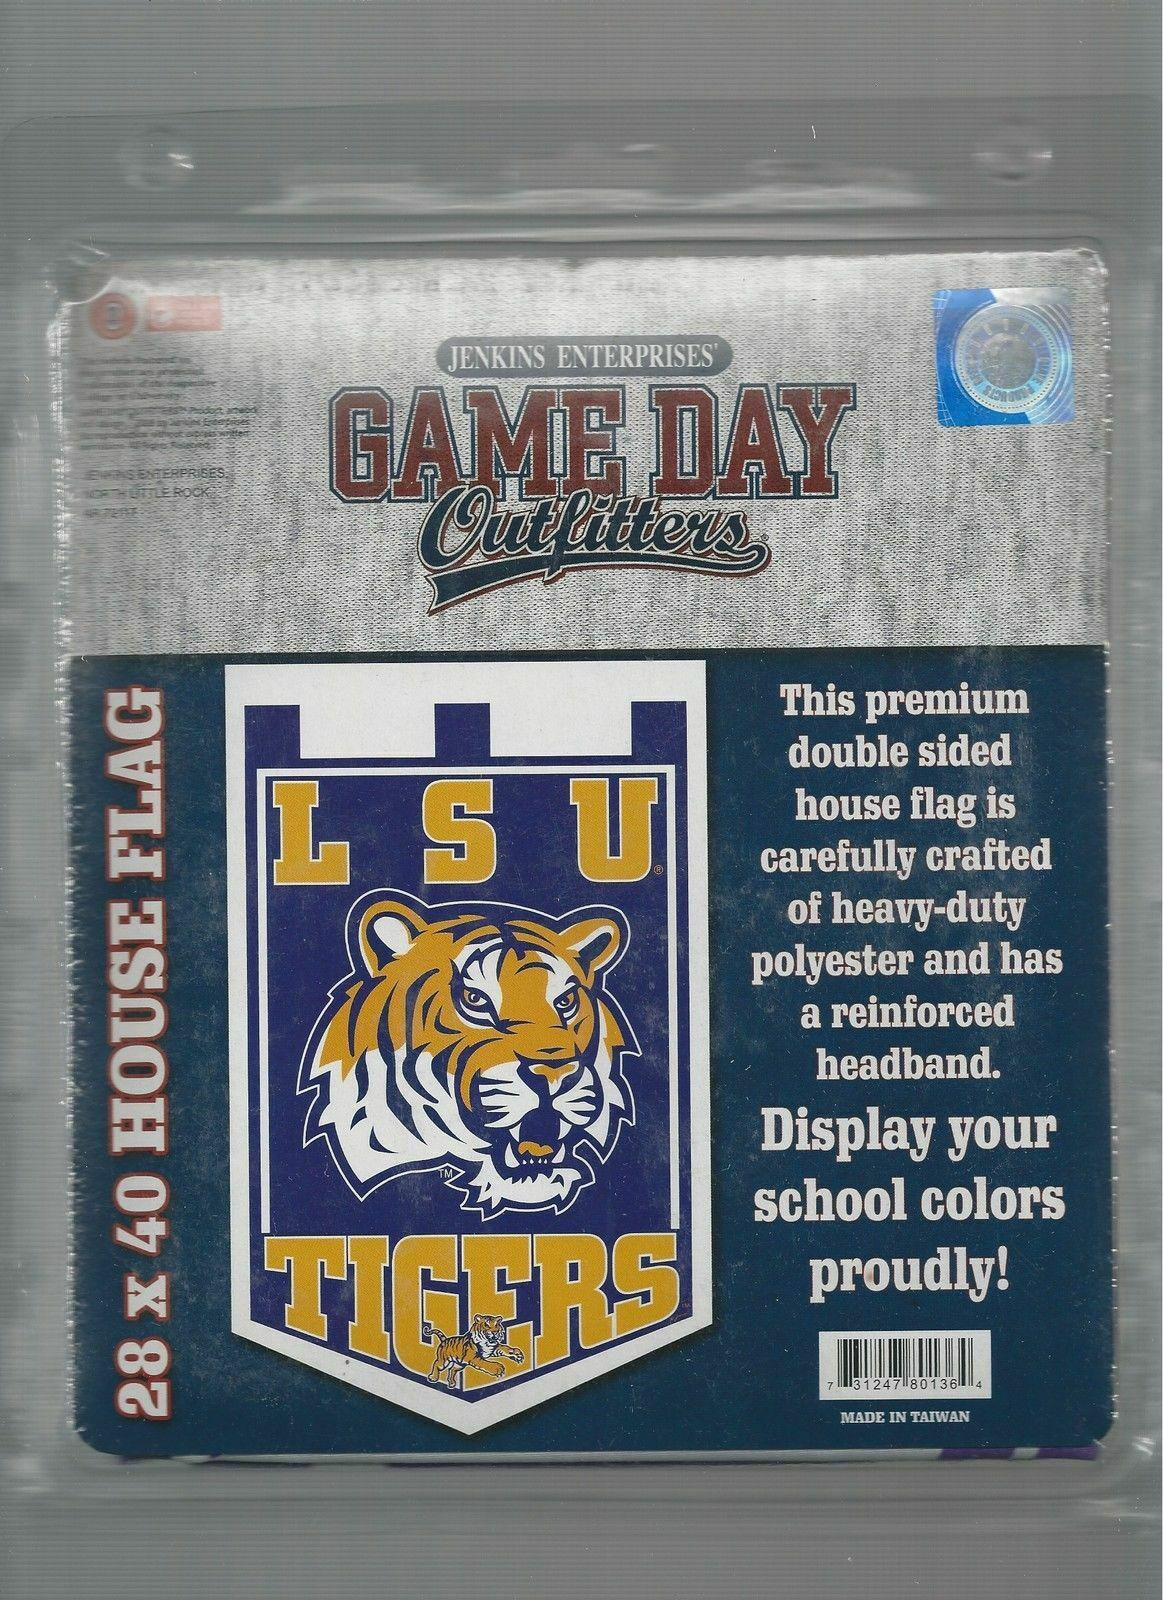 Lsu Tigers 28x40 House Flag Game Day Outfitters Ncaa For Sale Online Ebay